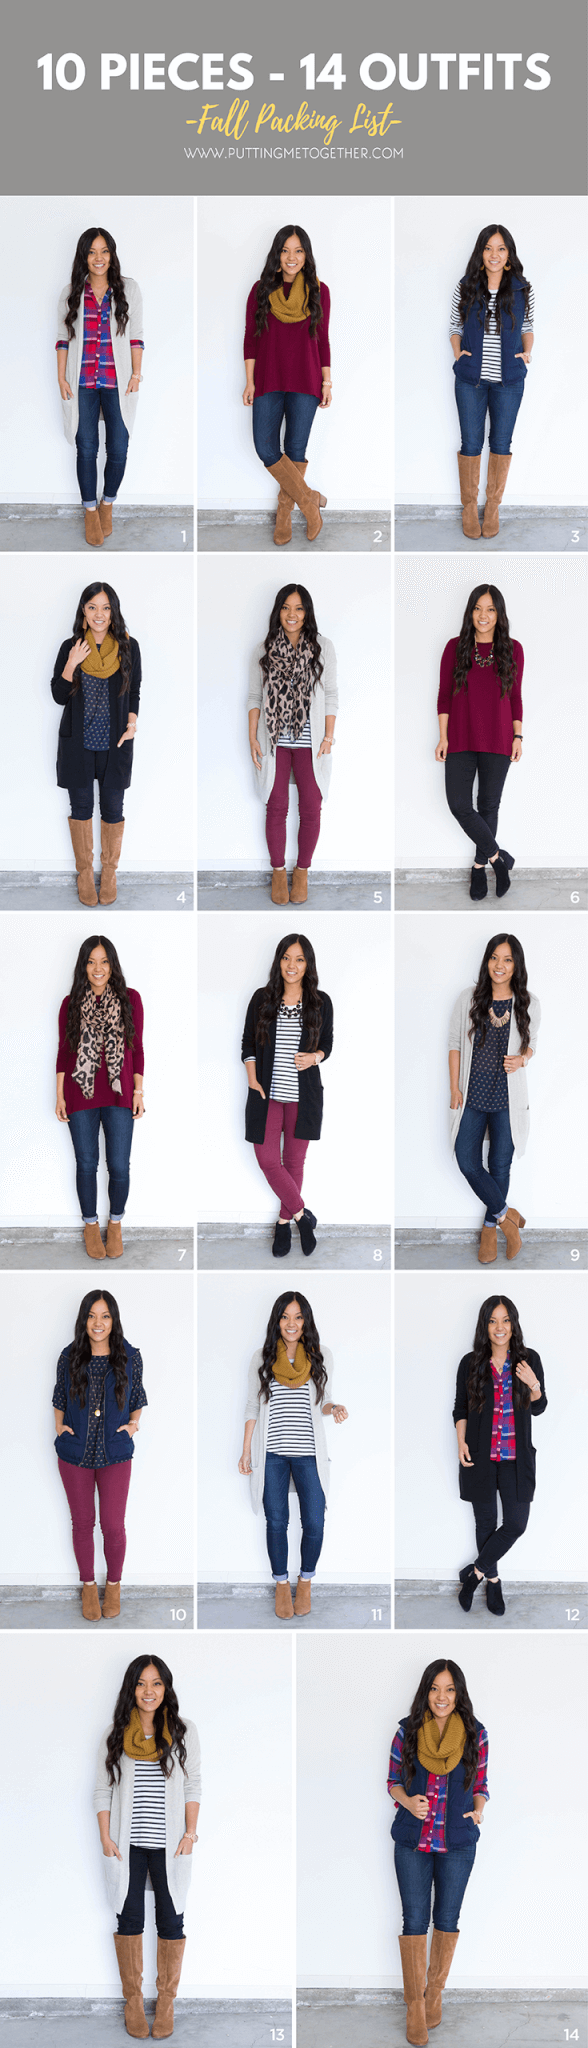 10 Pieces, 14 Outfits for Fall Capsule Wardrobe or Fall Packing